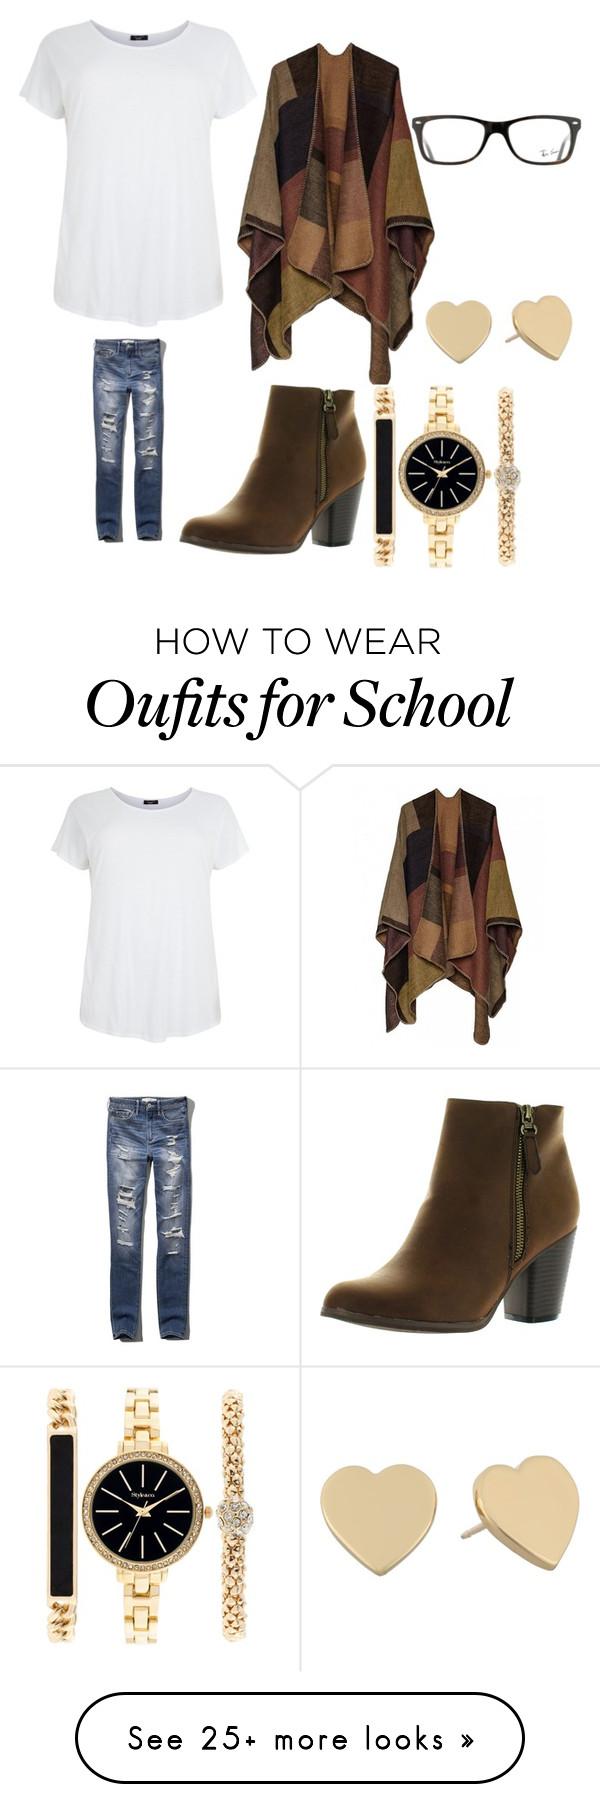 """""""Winter casual for school"""" by madi-eifler on Polyvore featuring Abercrombie & Fitch, Reneeze, Style & Co., Kate Spade and Ray-Ban"""